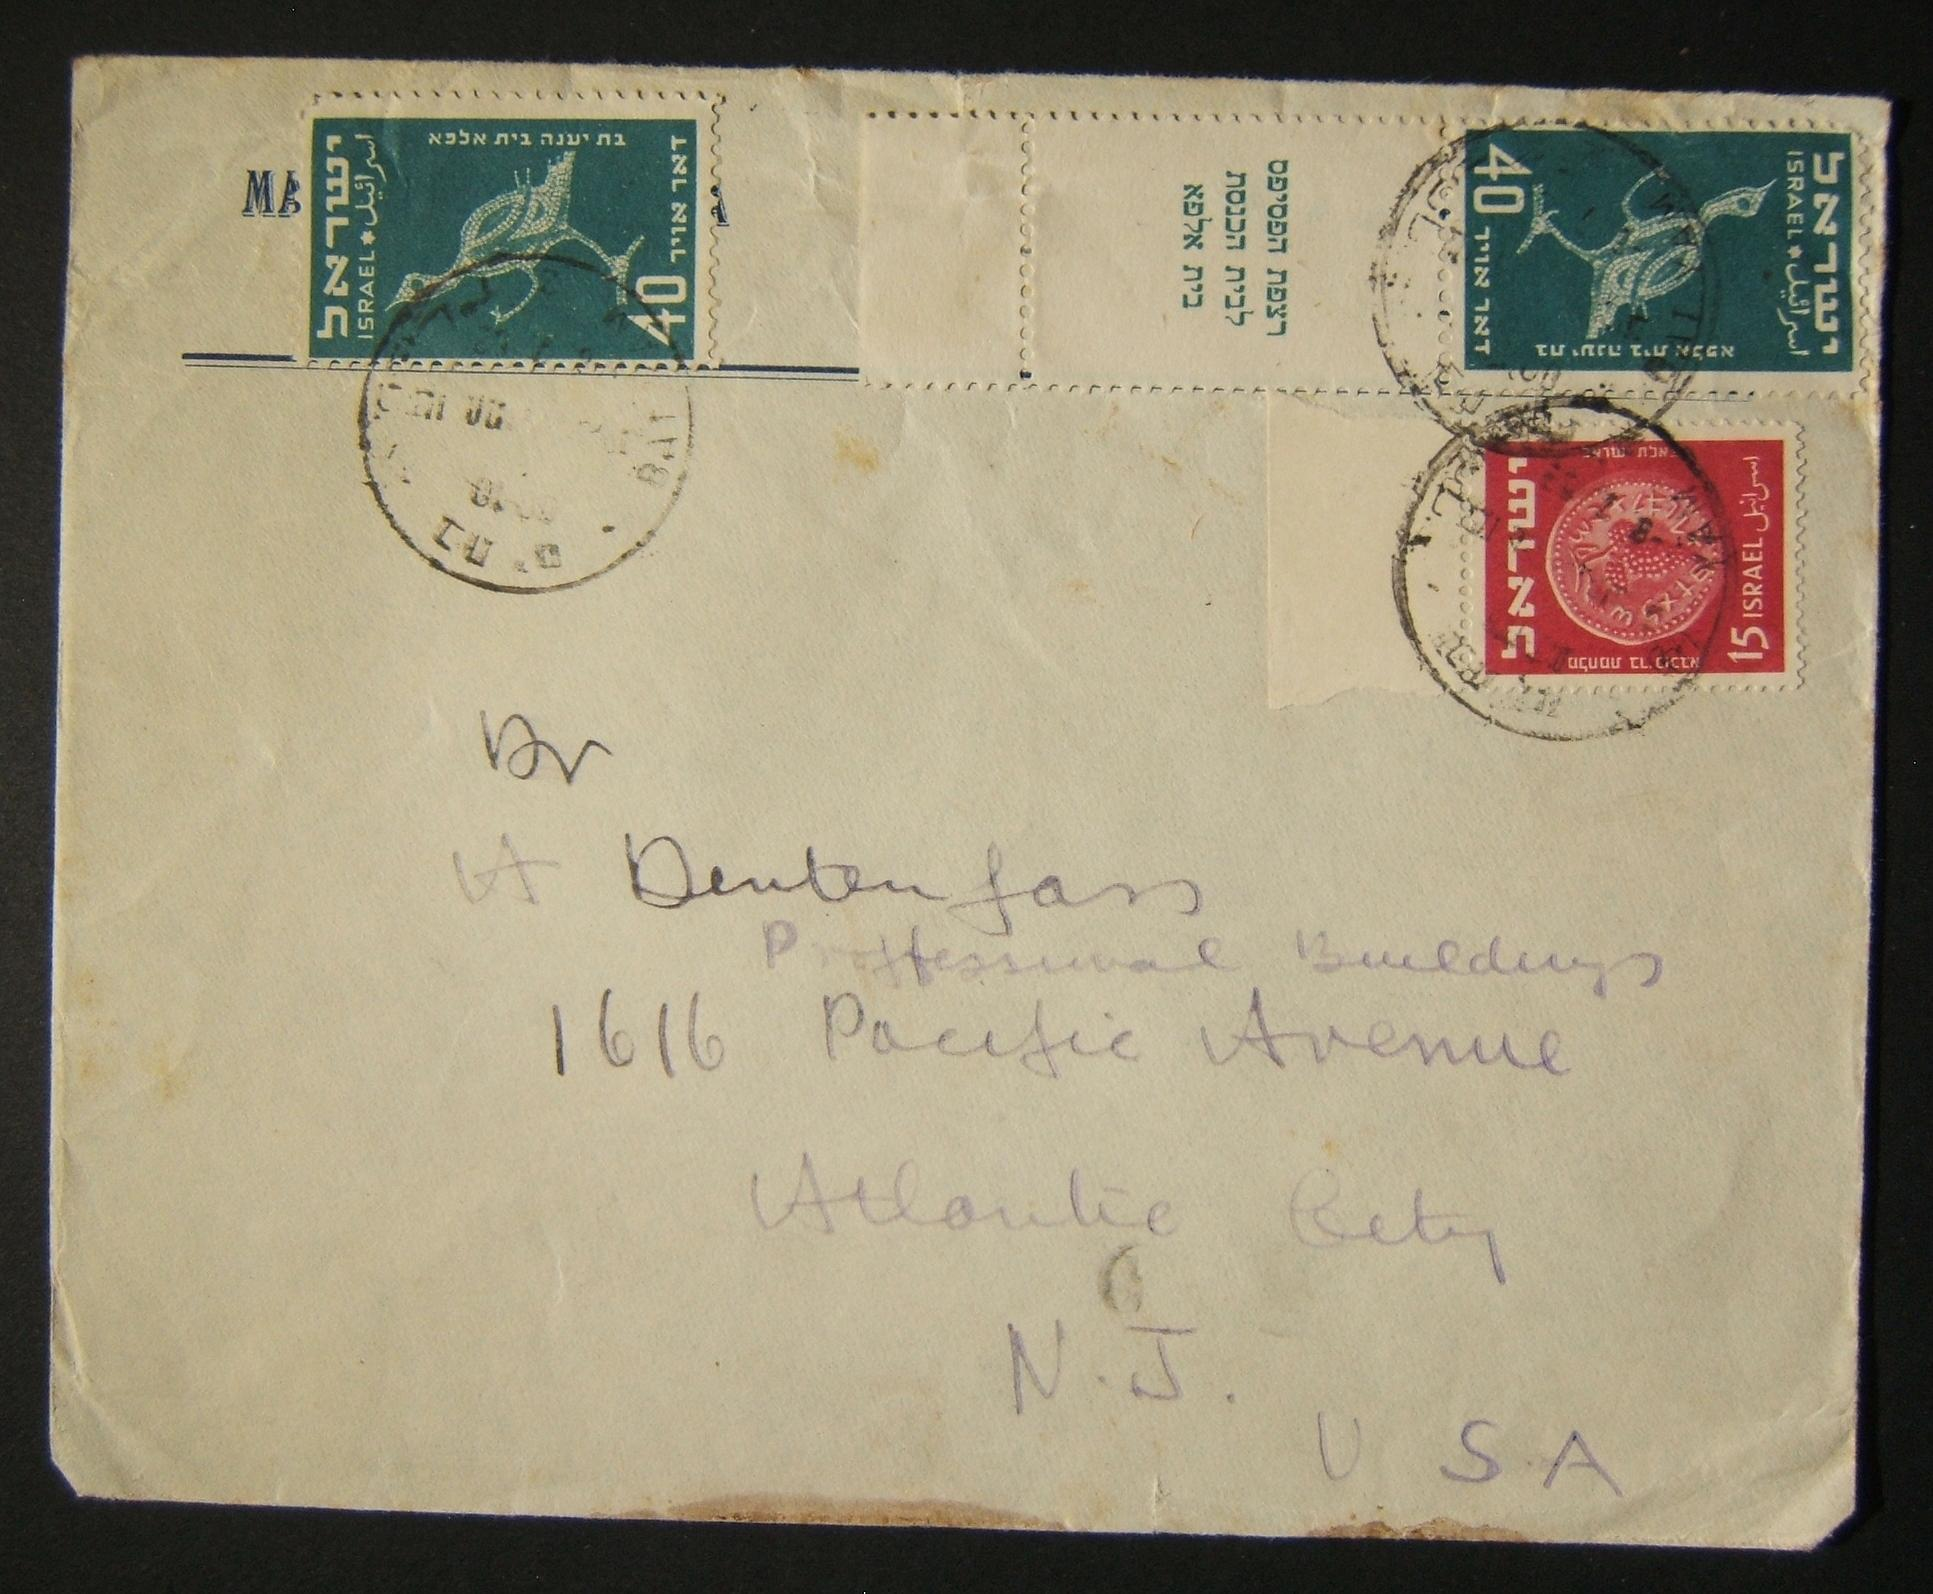 1950 1st airmail / PO's, rates & routes: 8-7-1952 surface mailed business stationary commercial cover ex BAT YAM to NEW JERSEY franked 95pr at the SU-3a period letter rate using fu